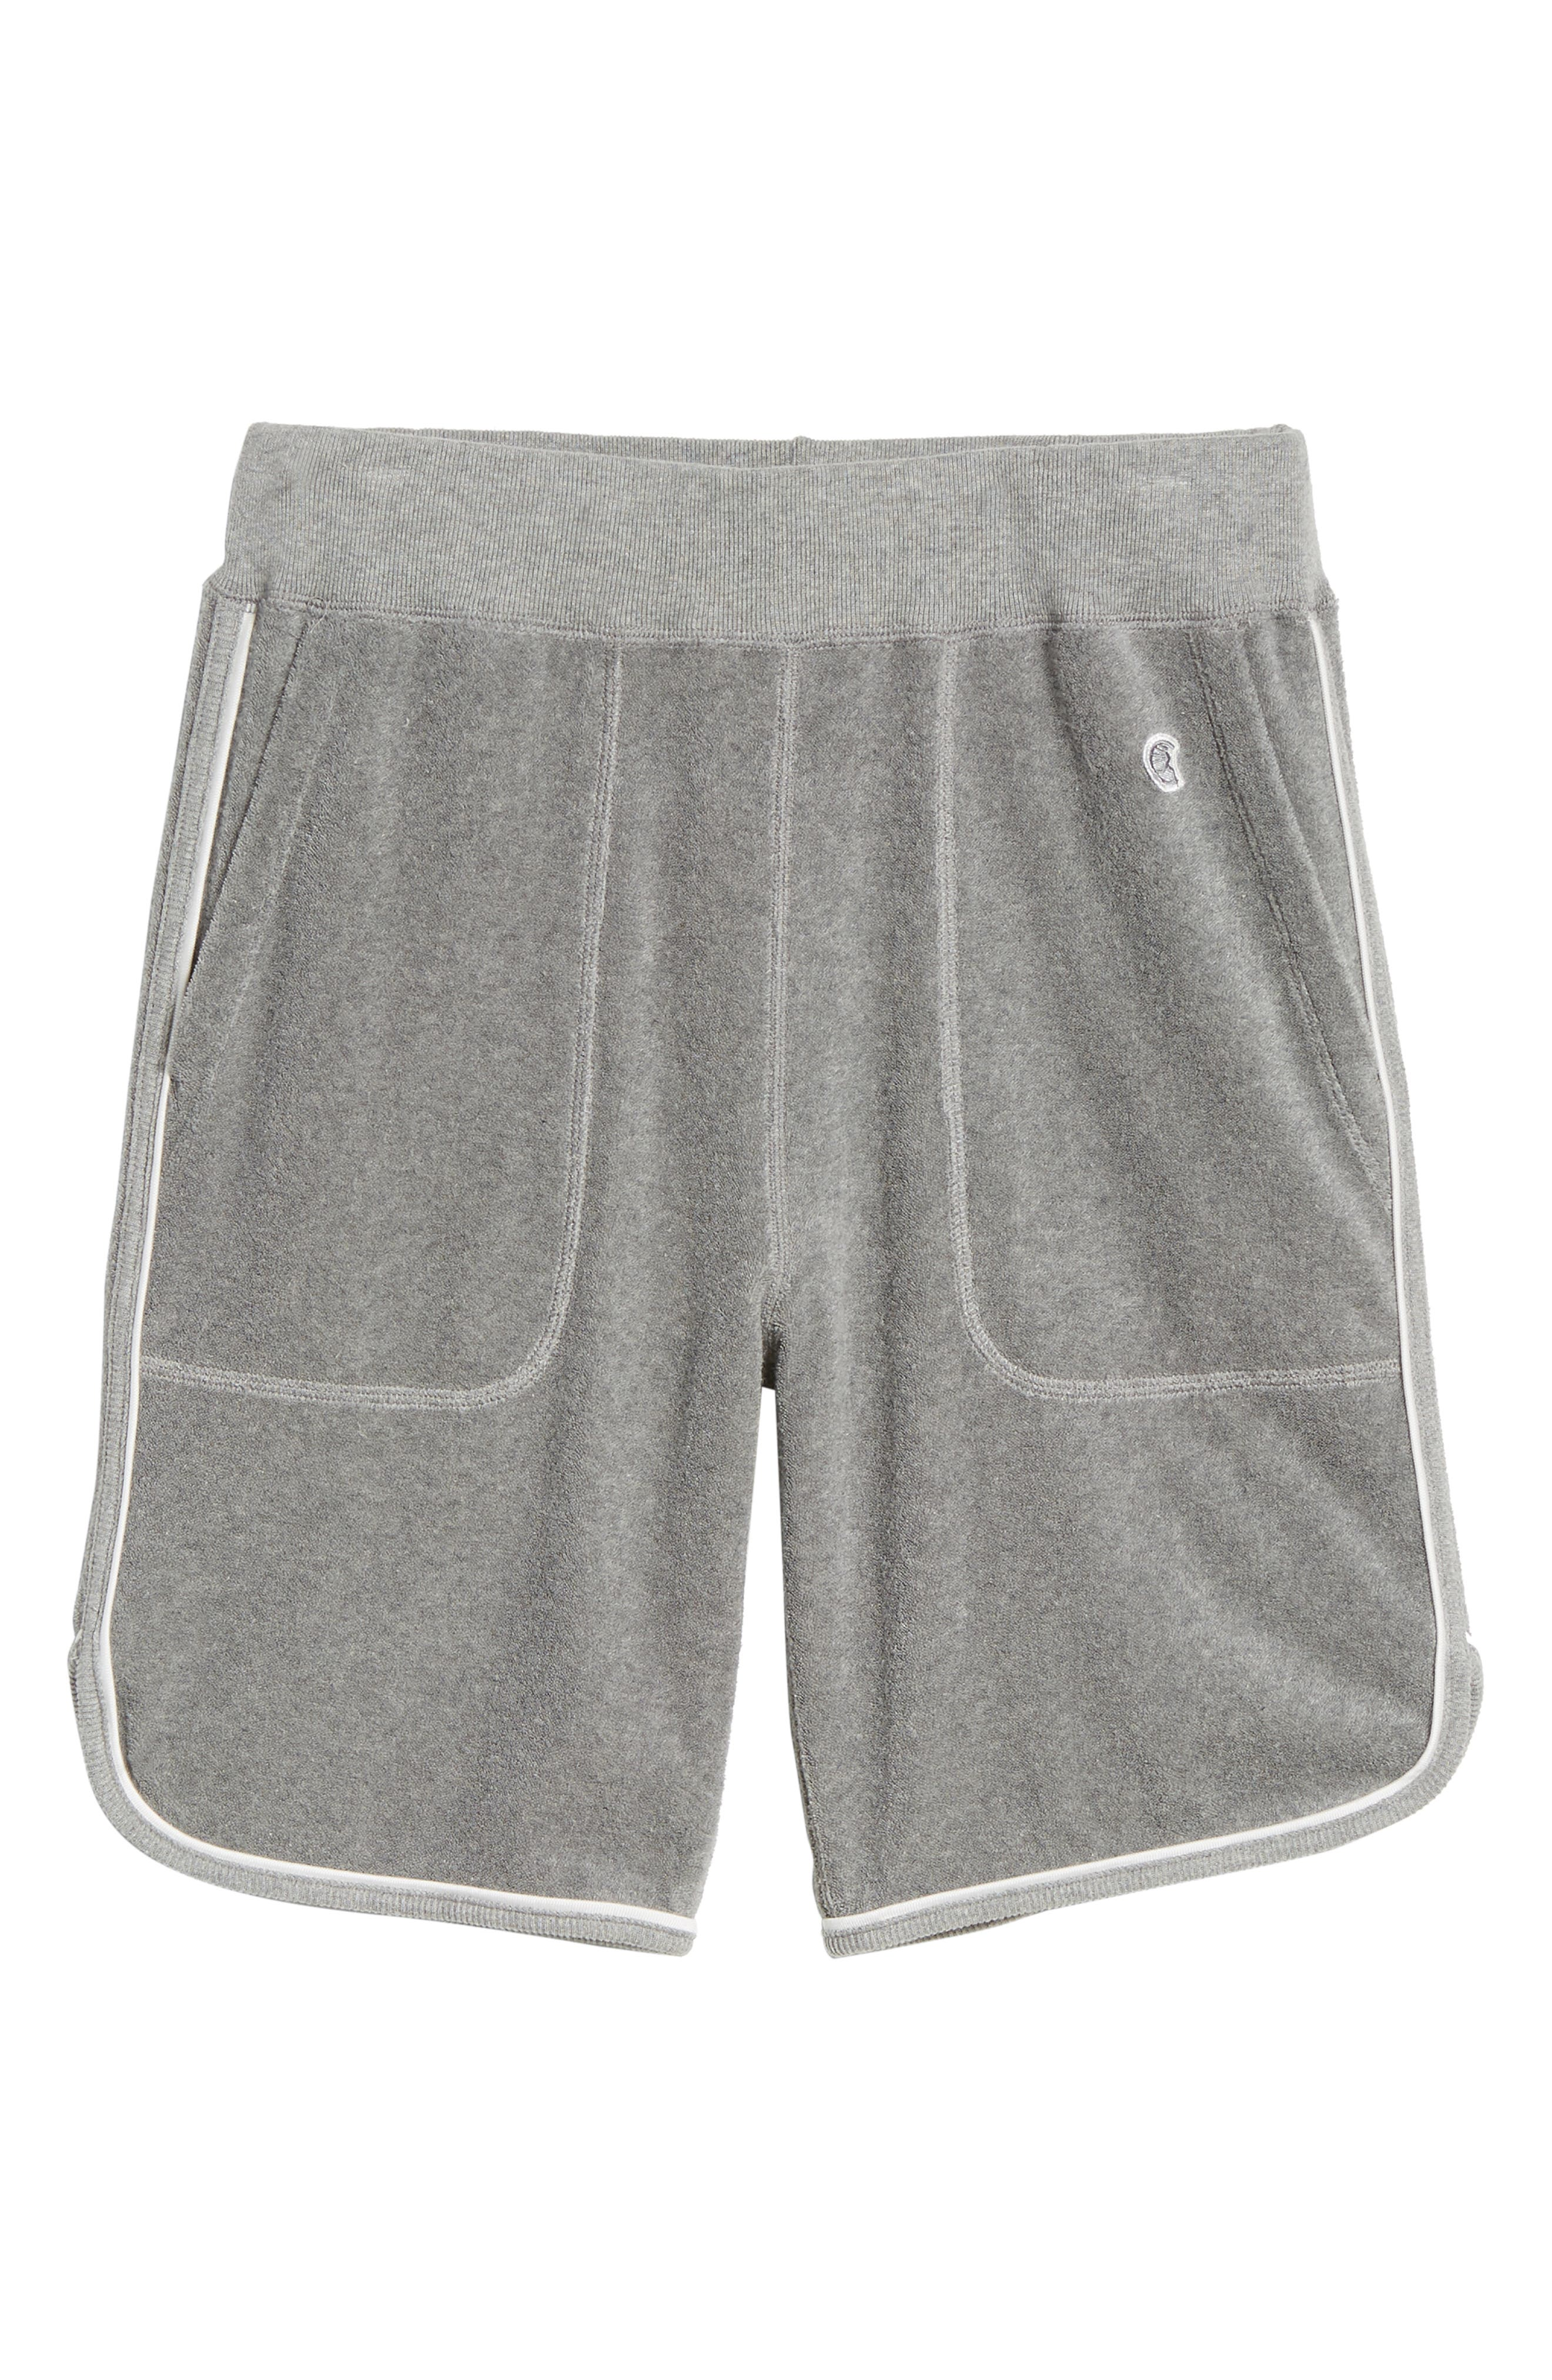 x Champion Piped Terry Shorts,                             Alternate thumbnail 6, color,                             GREY